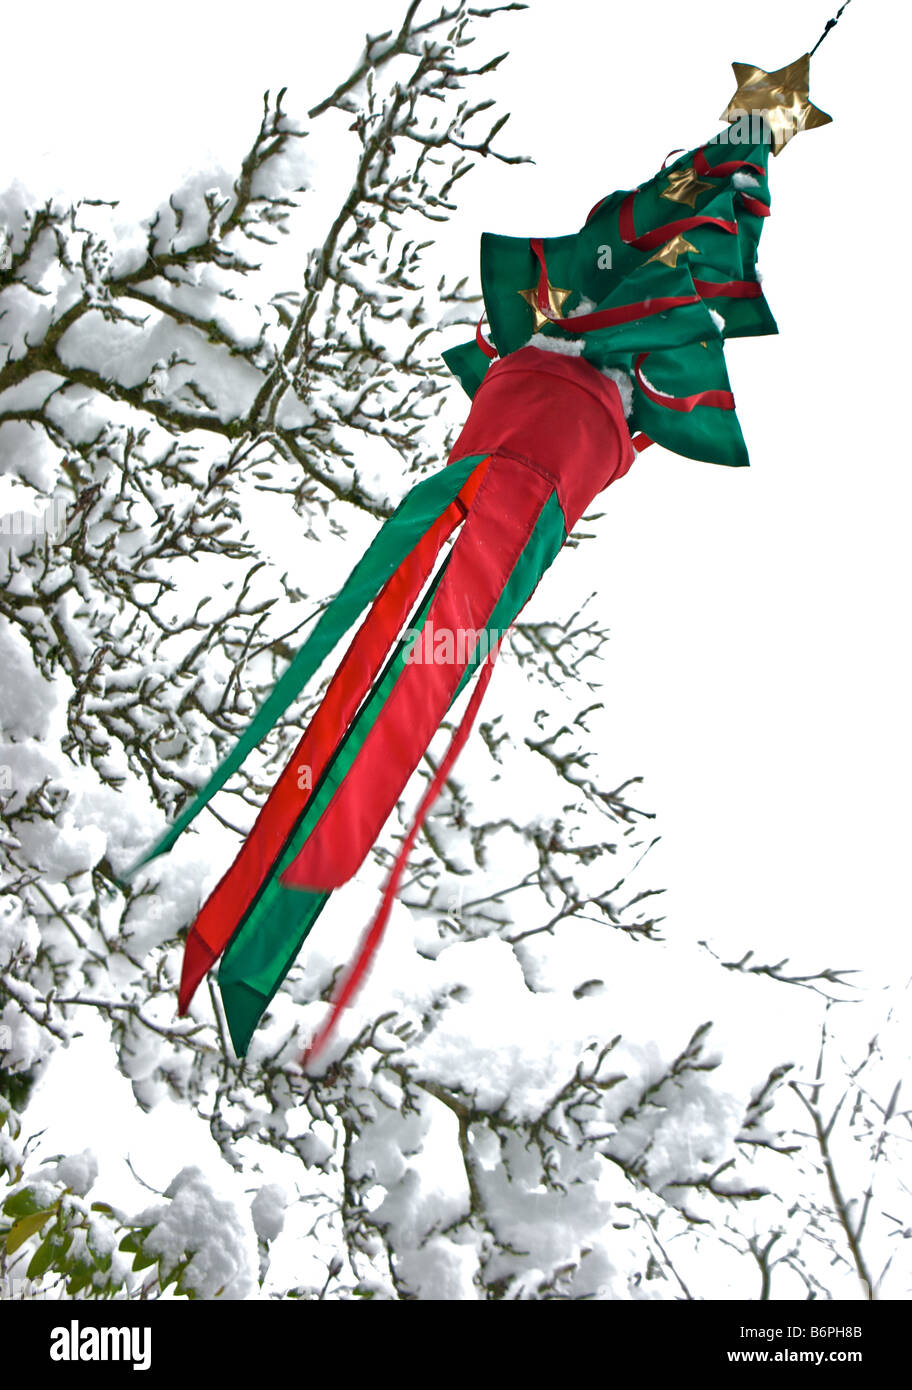 Christmas Tree Windsock In Snowstorm With Backdrop Of Snow Laden Magnolia  Tree Branches And Trails Of Falling Snow